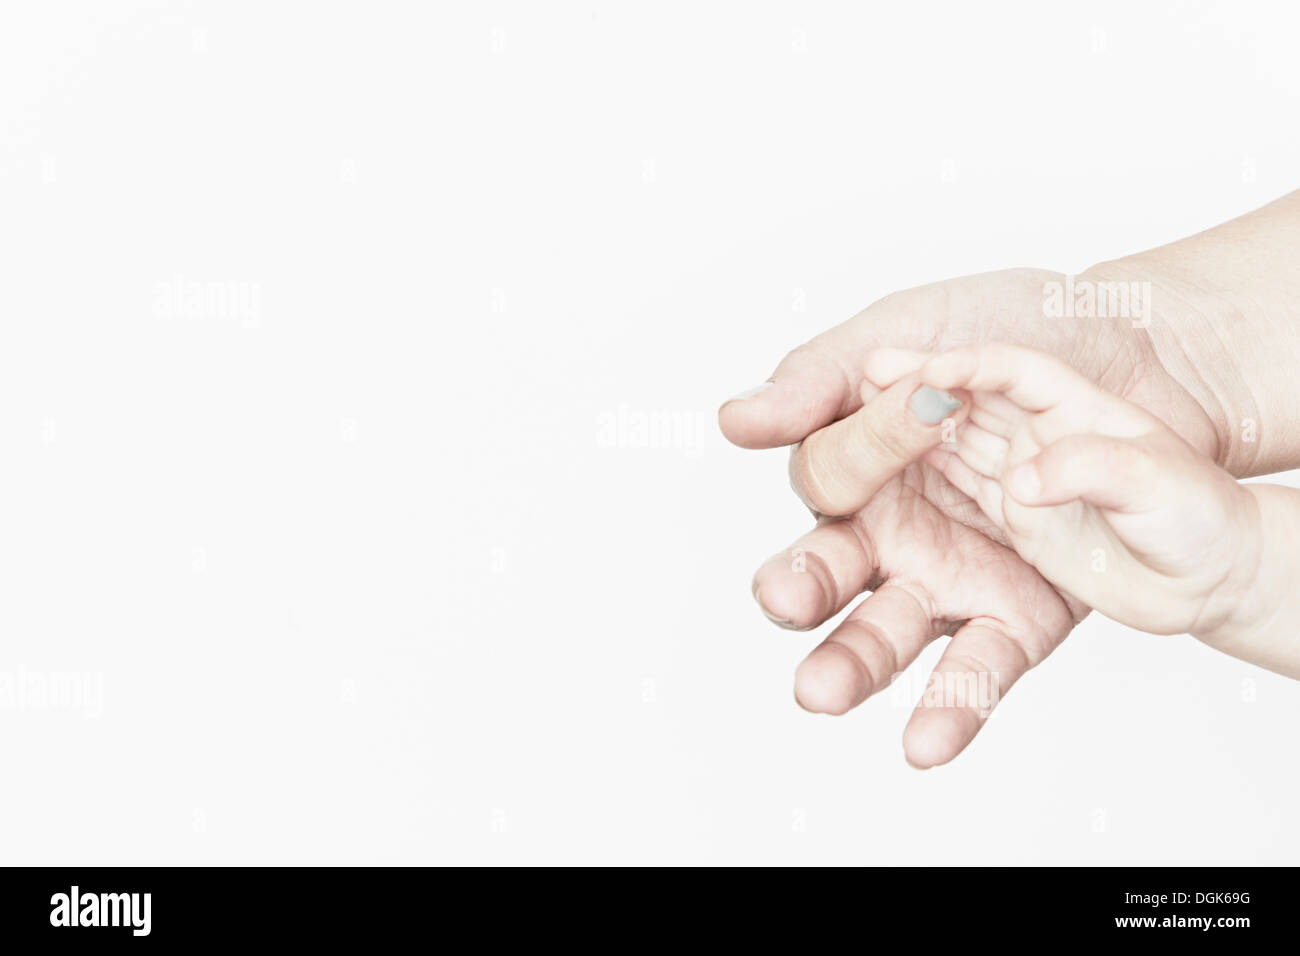 Baby's hand clasping mother's finger - Stock Image